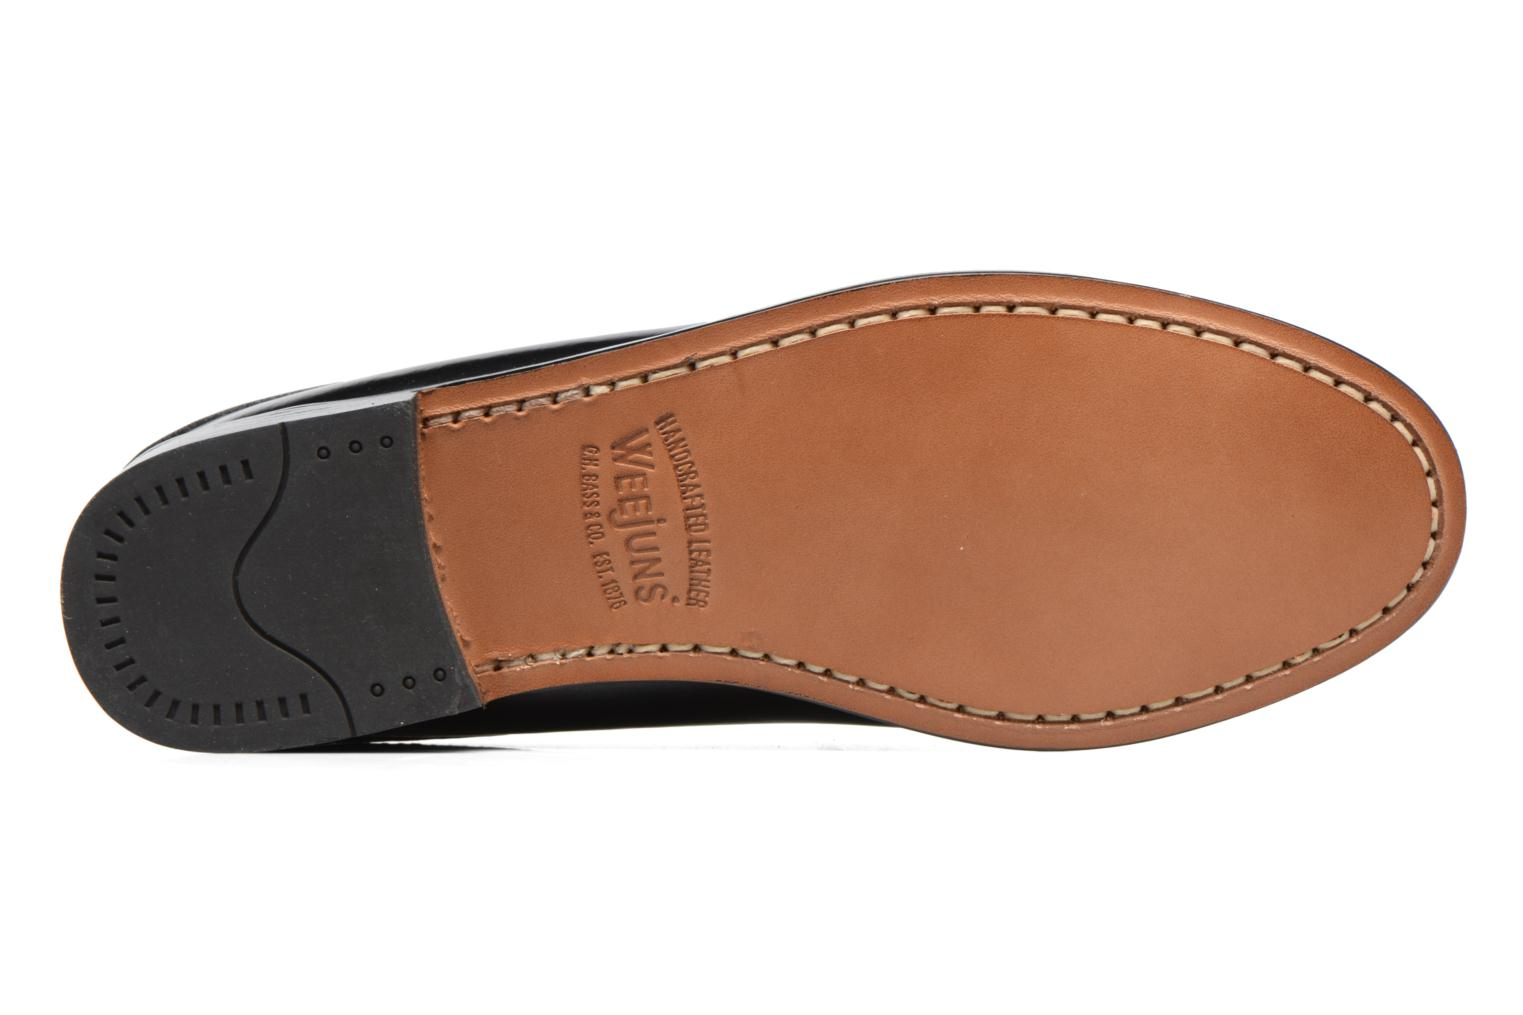 Weejun WMN Penny Slide 000 Black Leather